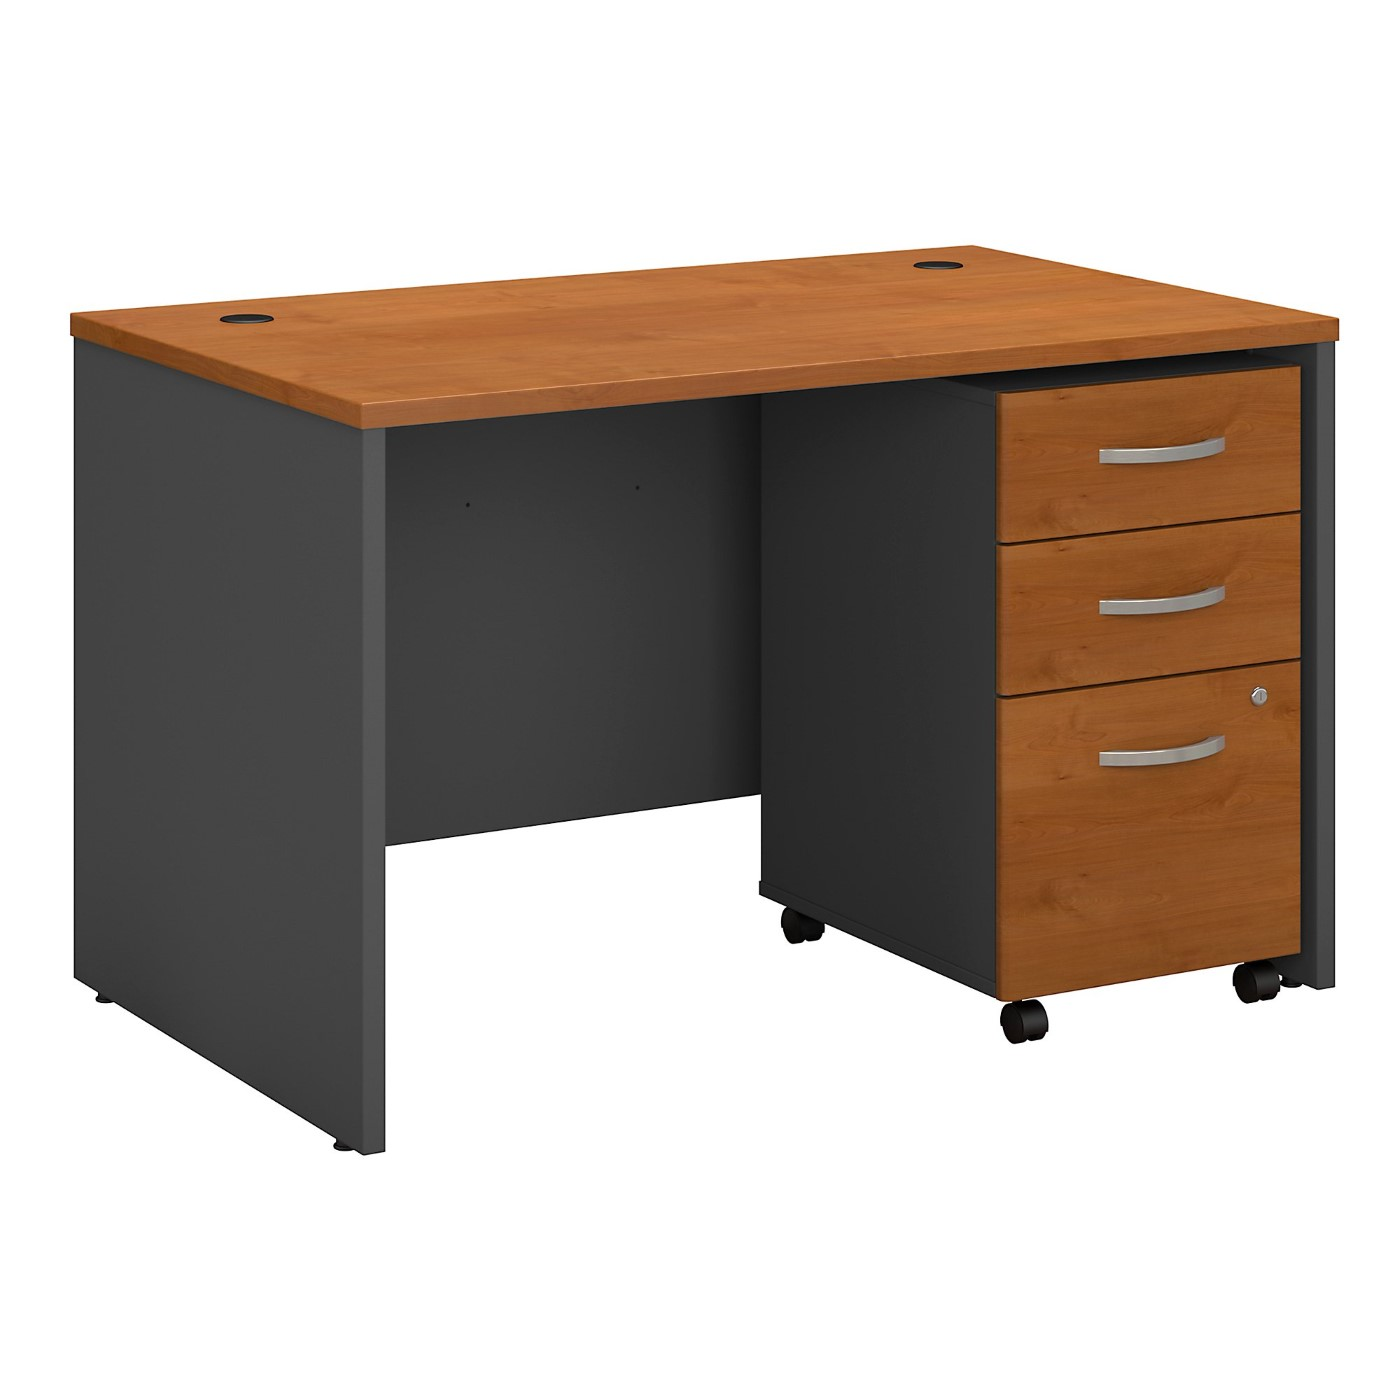 BUSH BUSINESS FURNITURE SERIES C 48W X 30D OFFICE DESK WITH MOBILE FILE CABINET. FREE SHIPPING SALE DEDUCT 10% MORE ENTER '10percent' IN COUPON CODE BOX WHILE CHECKING OUT.